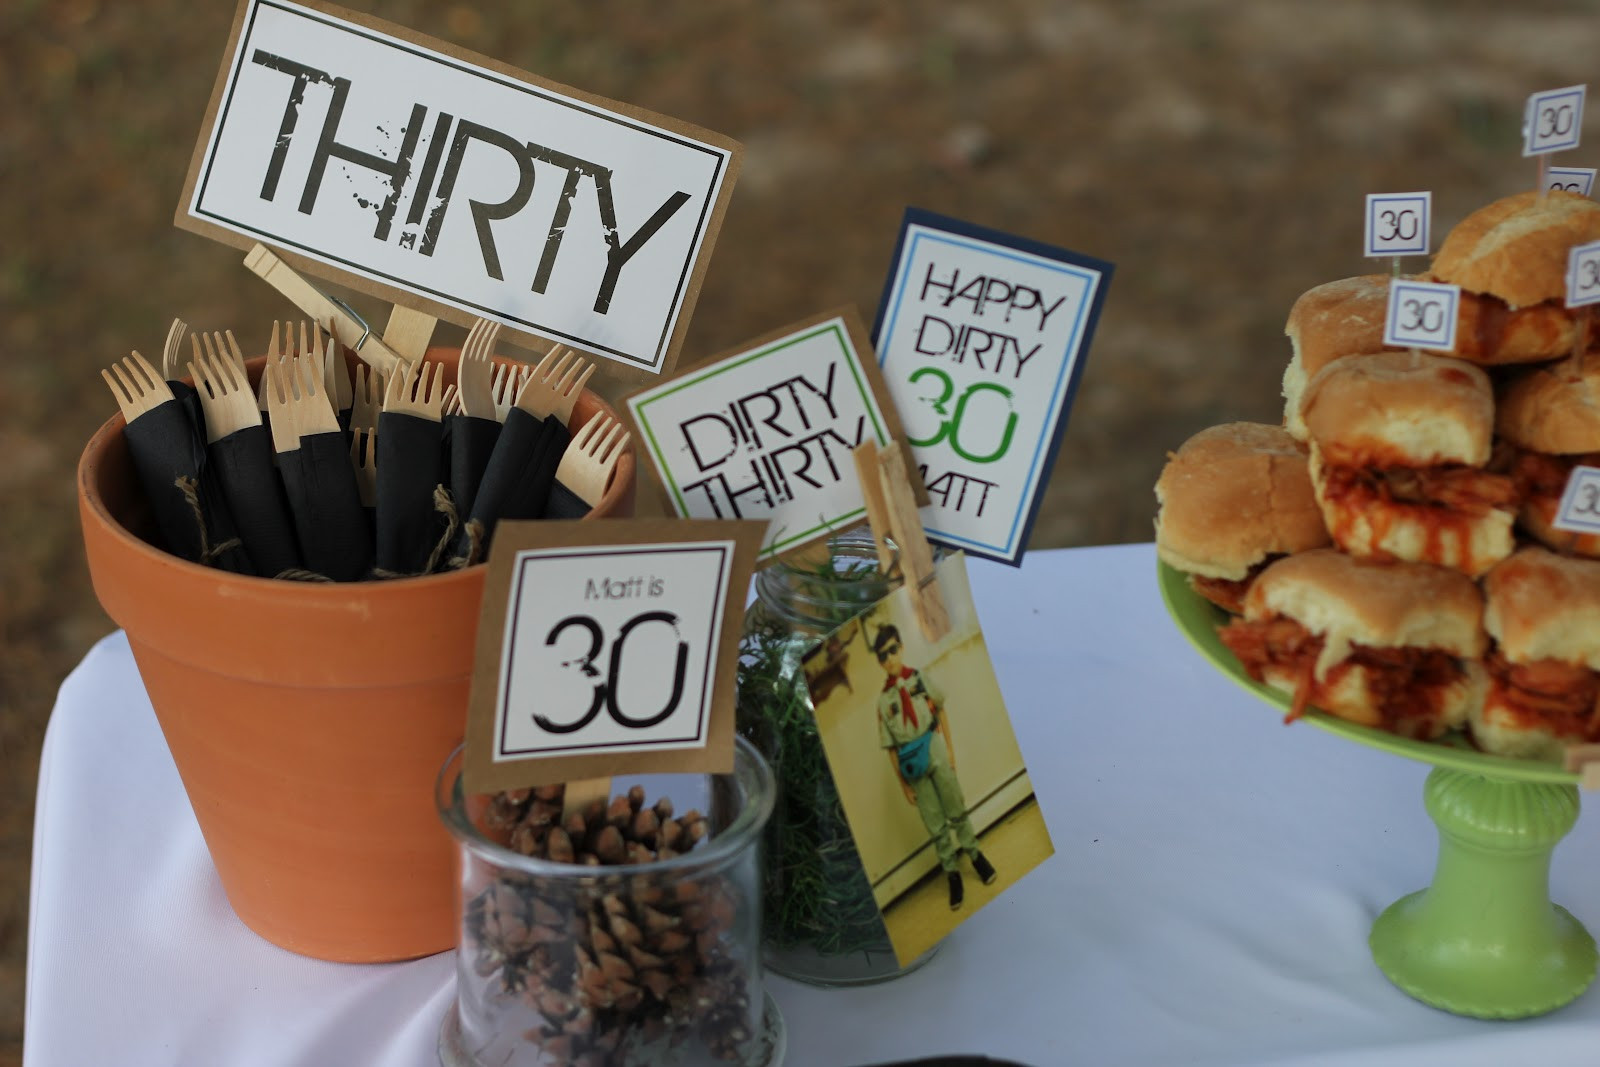 Best ideas about Dirty 30 Birthday Decorations . Save or Pin 7 Clever Themes for a Smashing 30th Birthday Party Now.